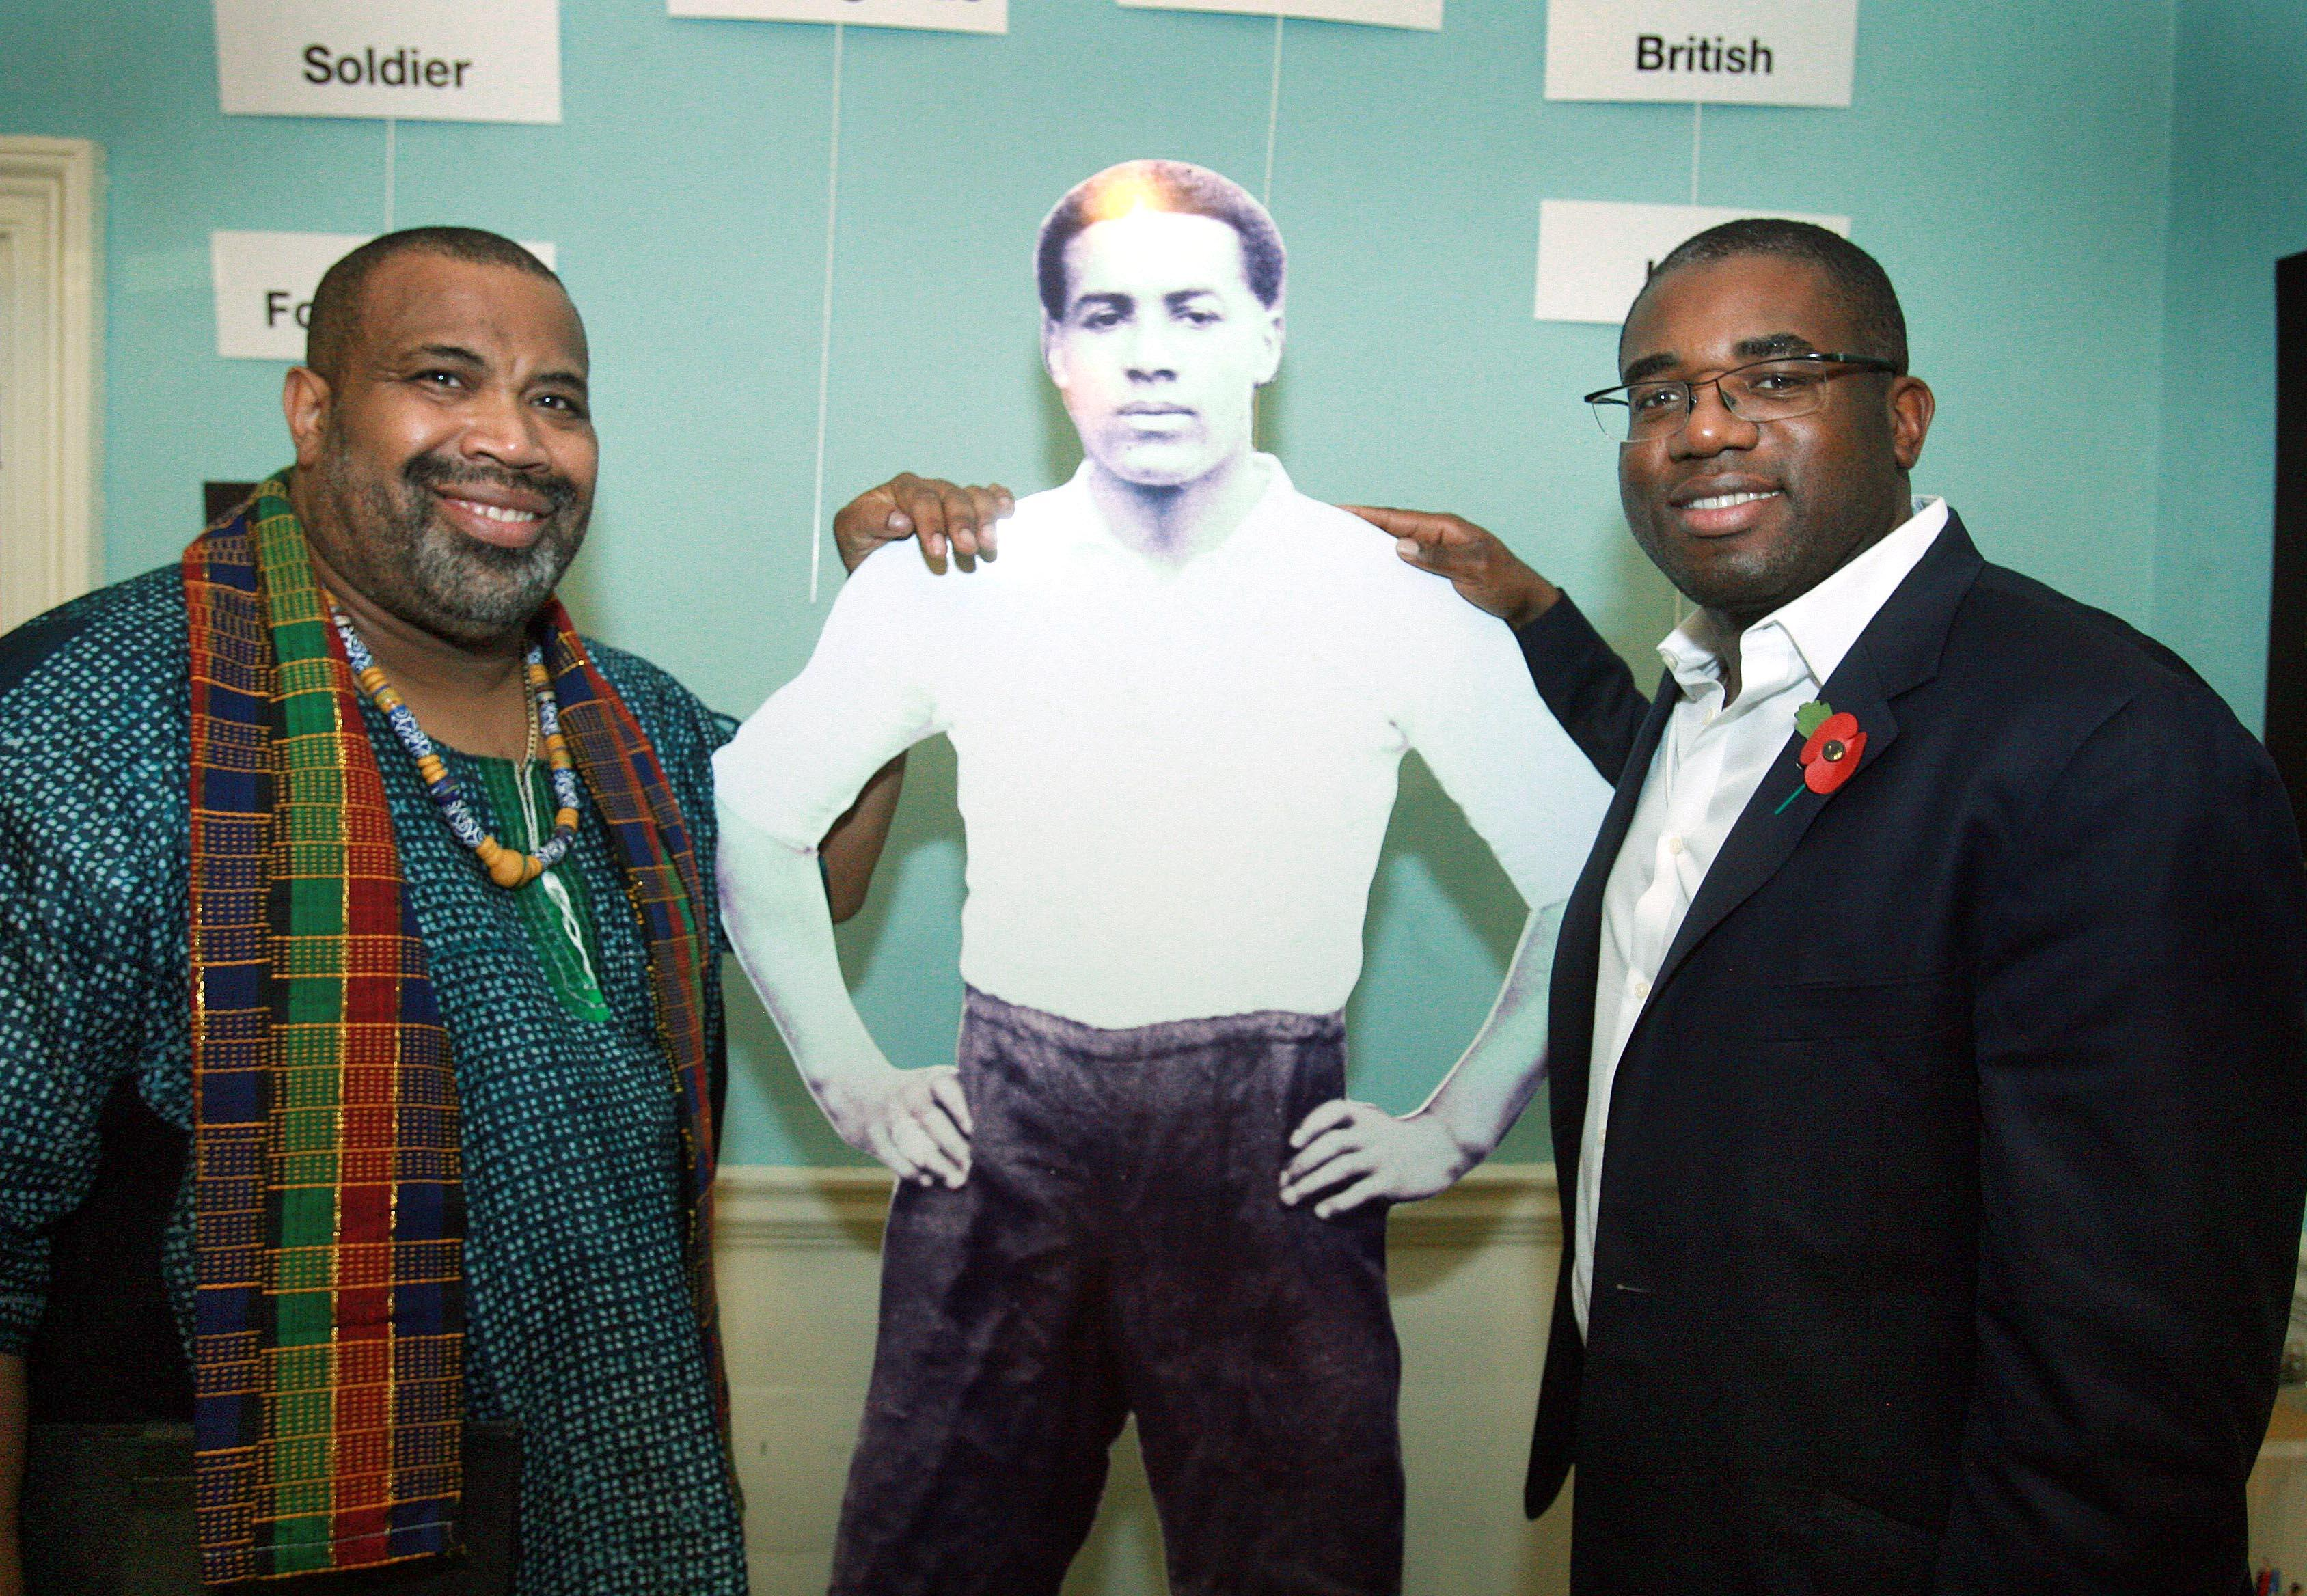 Walter Tull exhibition visited by David Lammy MP and Hesketh Benoit local community sports leader and activist